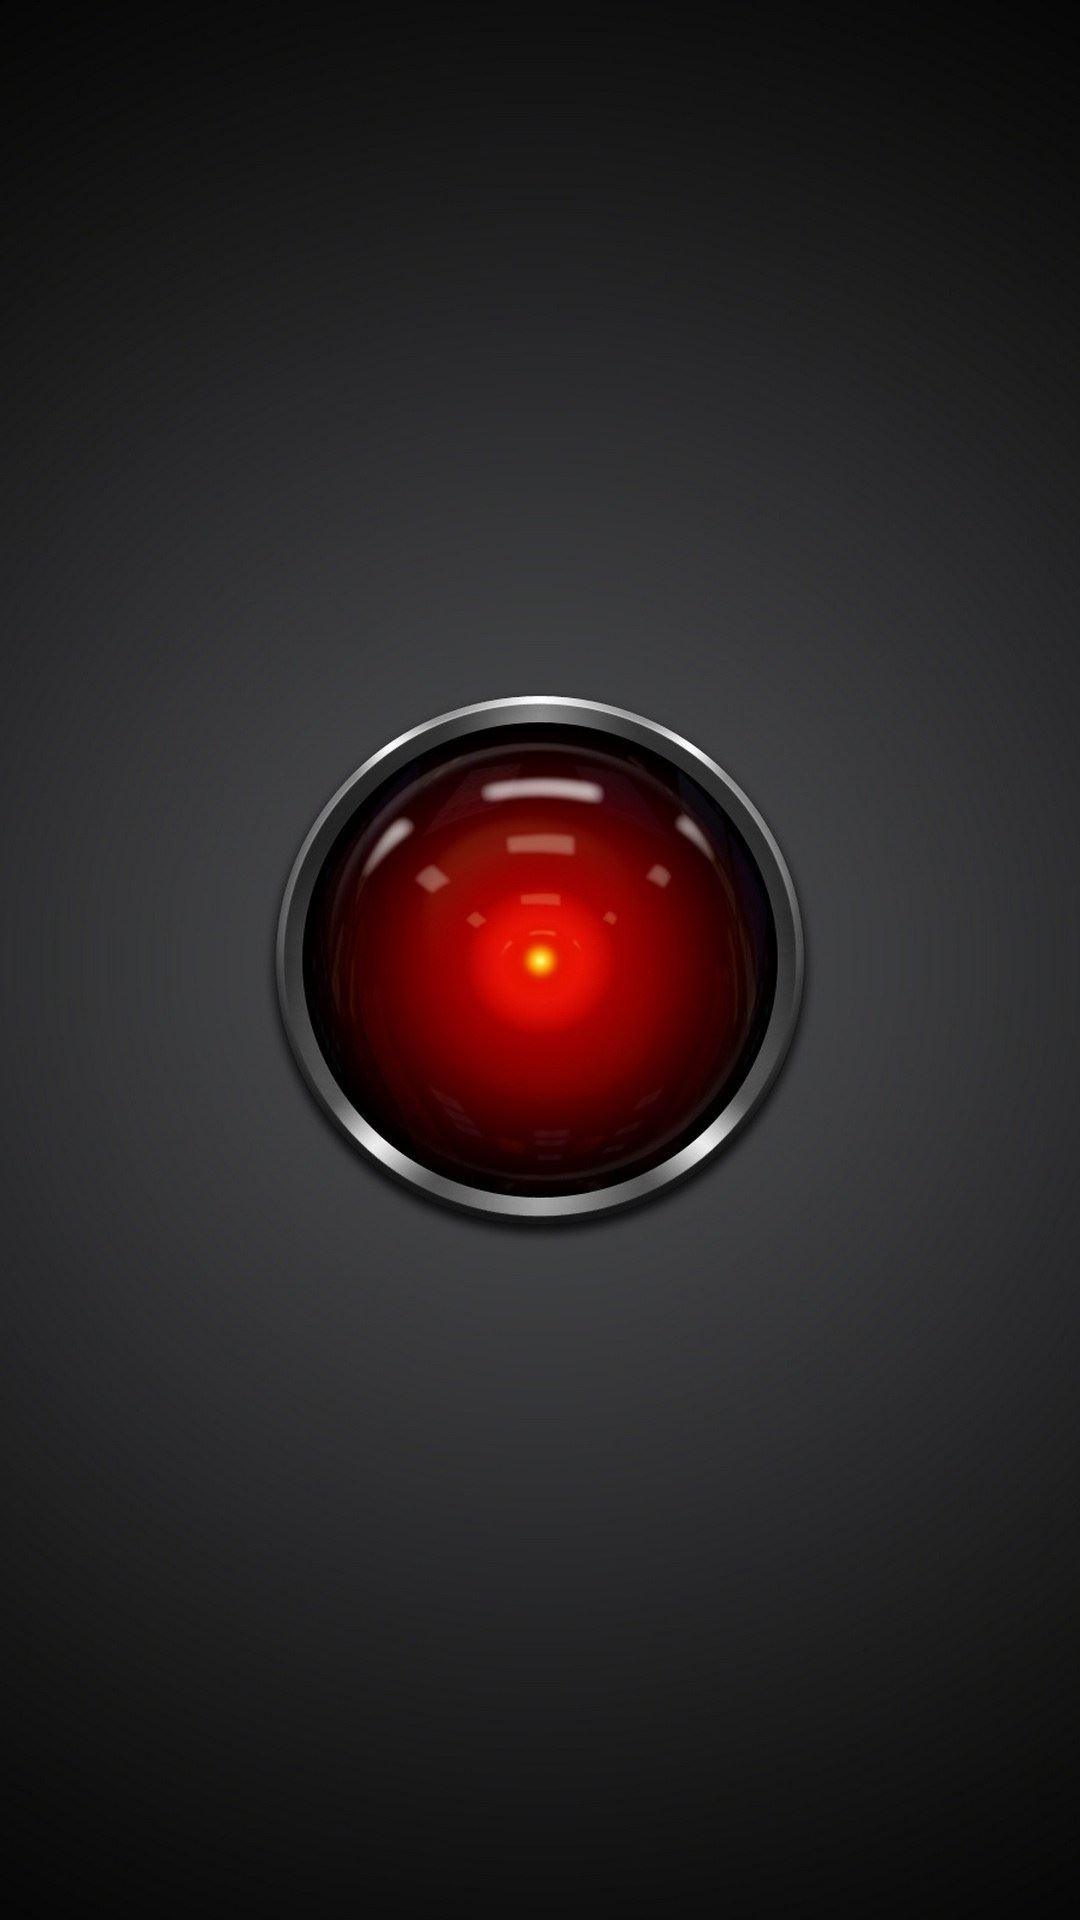 Hal 9000 android wallpaper best htc one wallpapers for Smartphone hd wallpaper